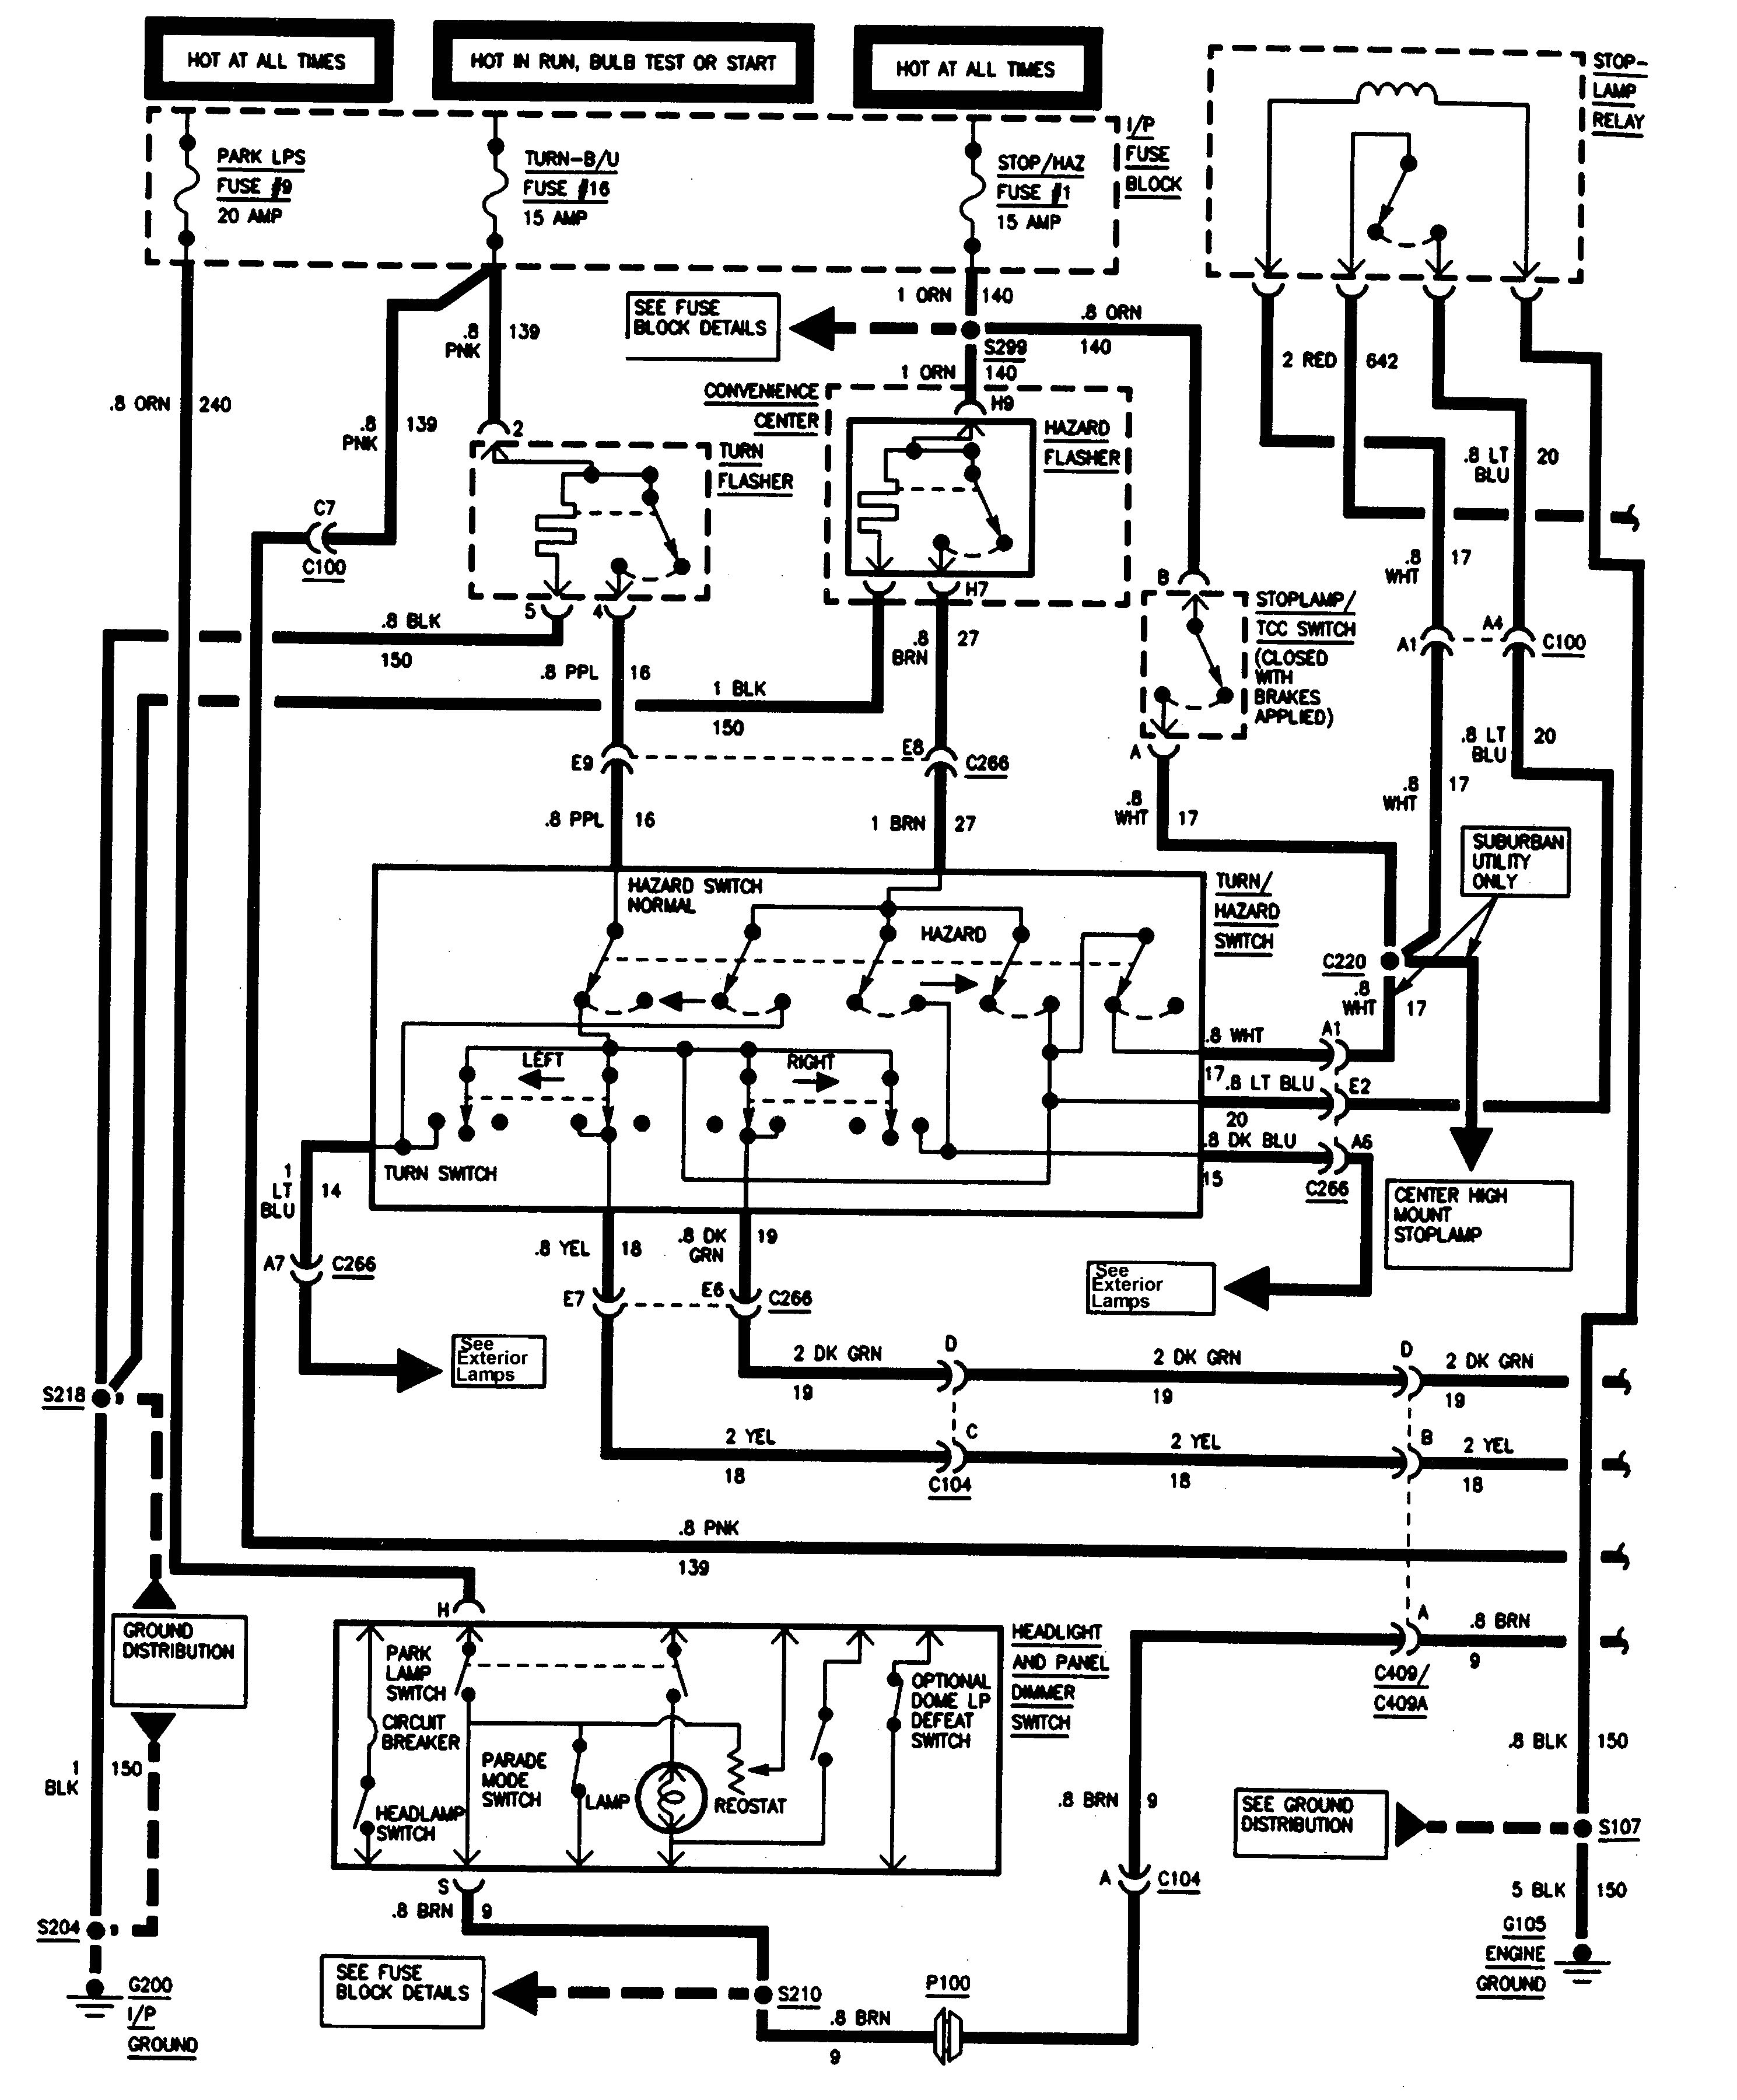 DIAGRAM] Gmc Sierra Trailer Wiring Diagram 2005 FULL Version HD Quality  Diagram 2005 - DRESSWAREHOUSE.DELI-MULTISERVICES.FRdresswarehouse.deli-multiservices.fr